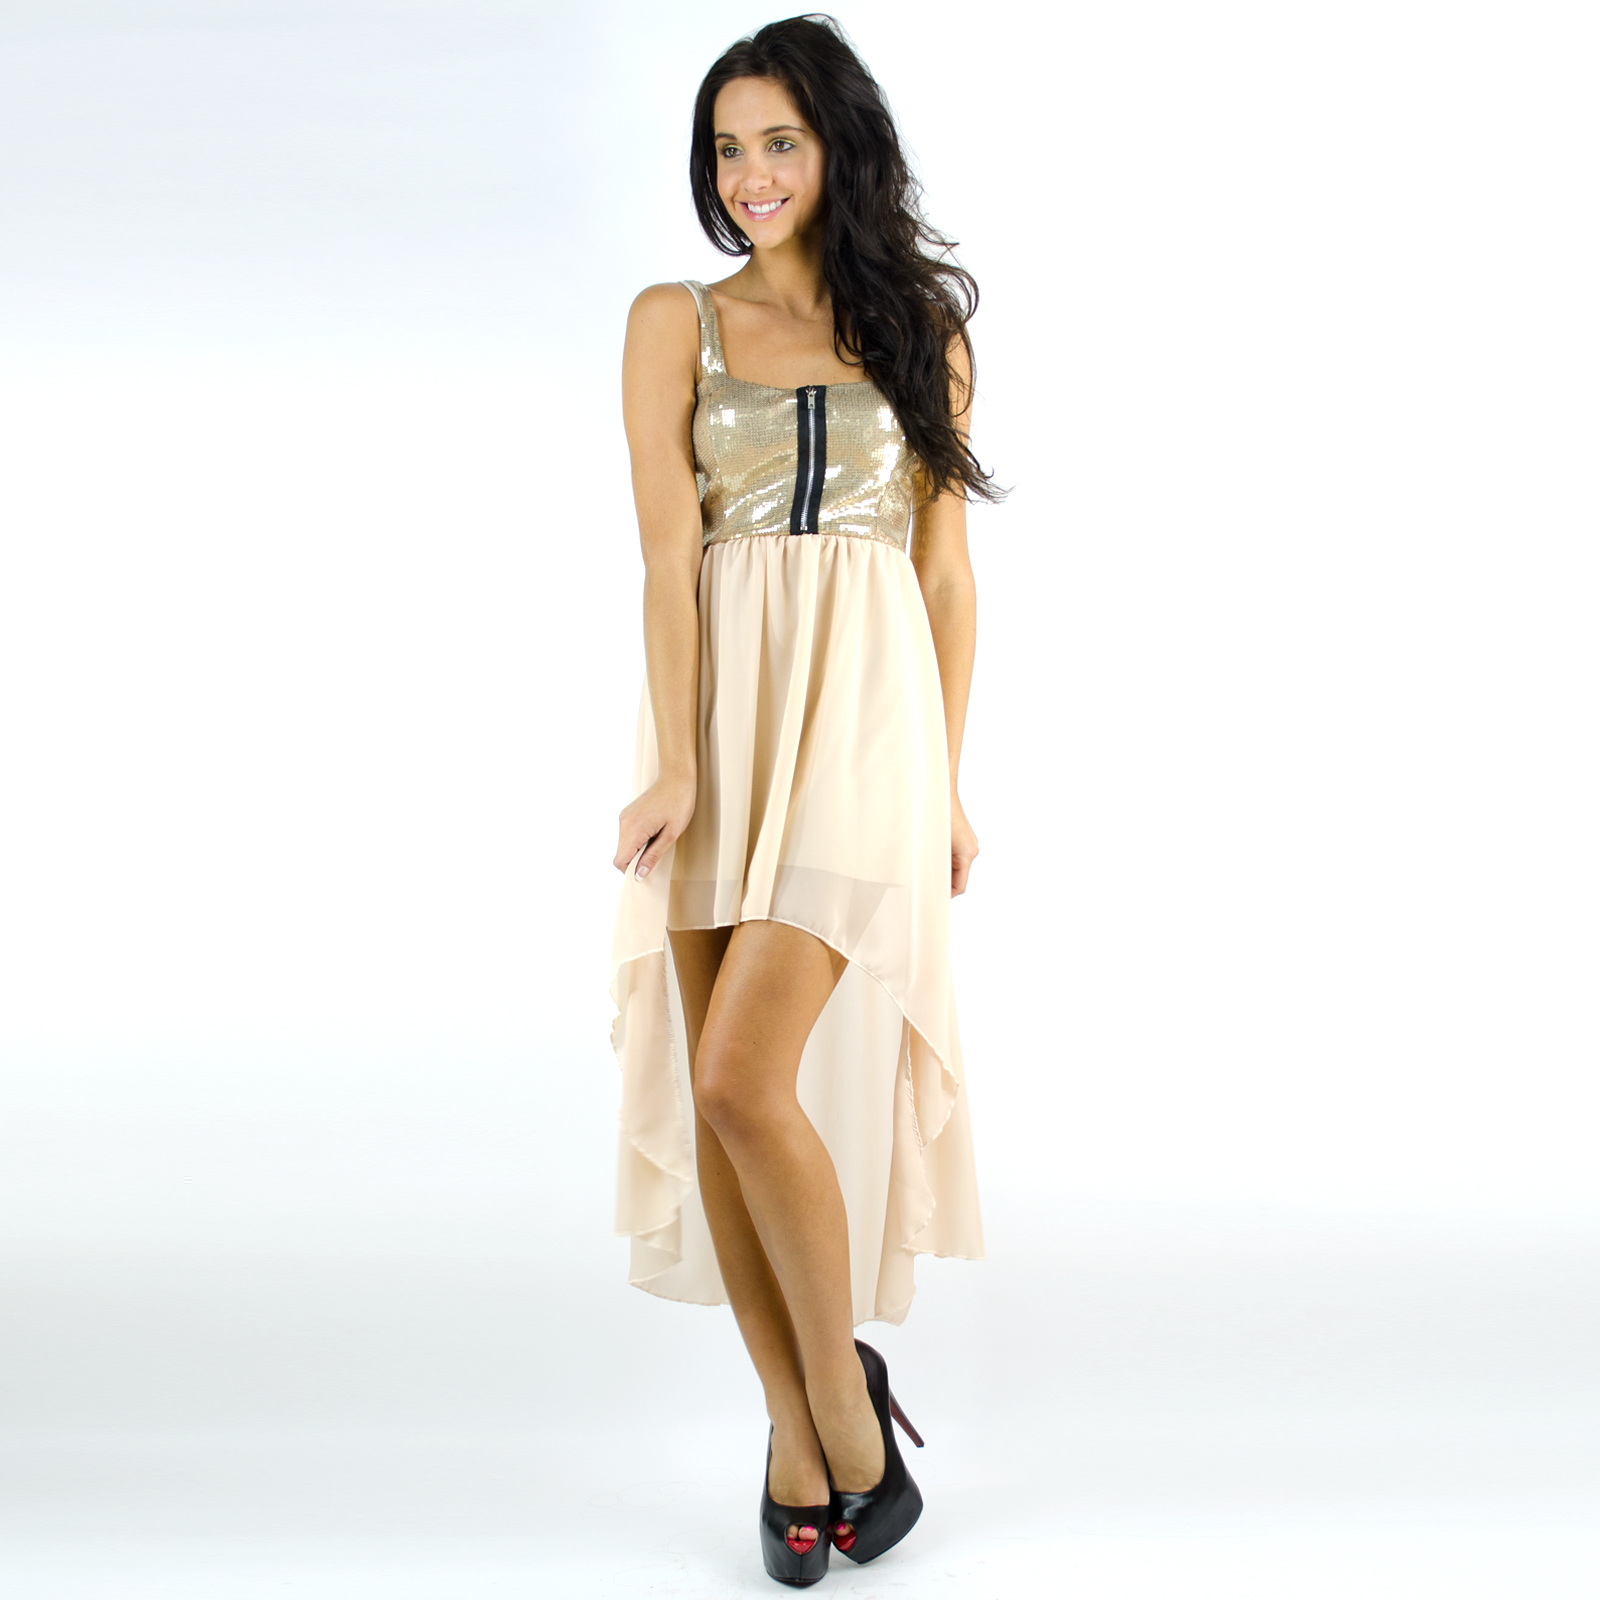 ASYMMETRIC DRESSES (10)